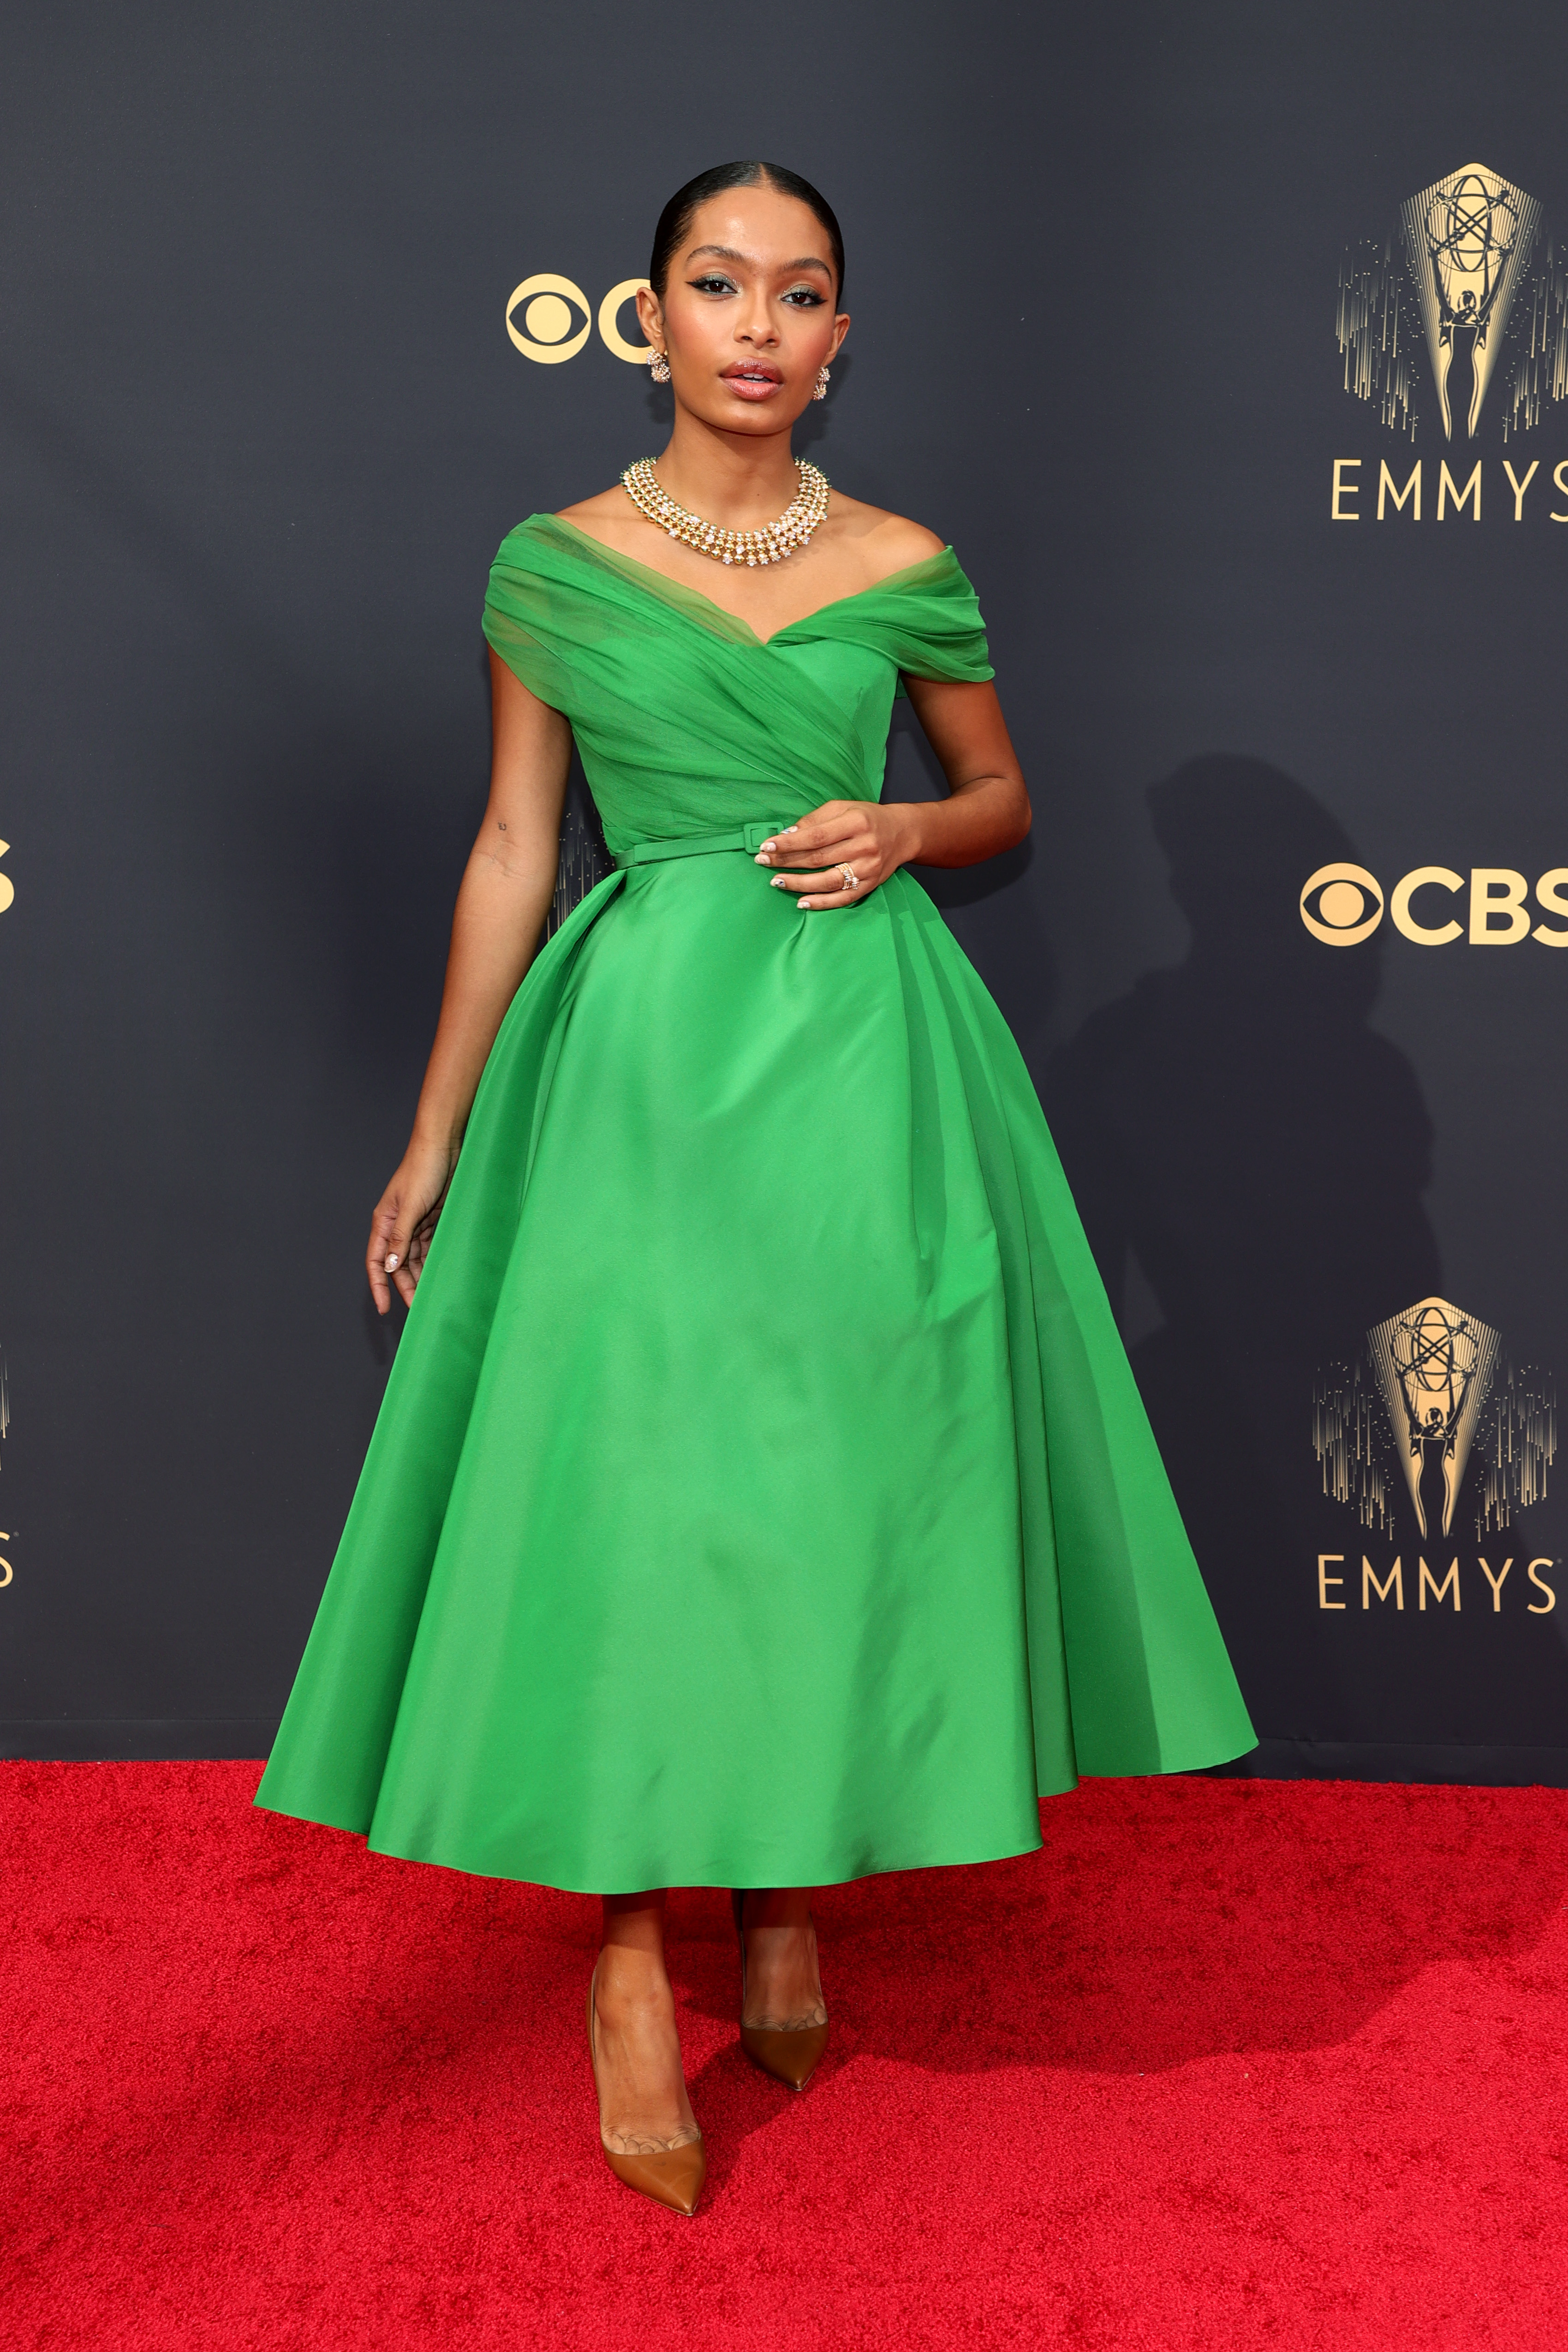 Yara Shahidi at an event for The 73rd Primetime Emmy Awards (2021)